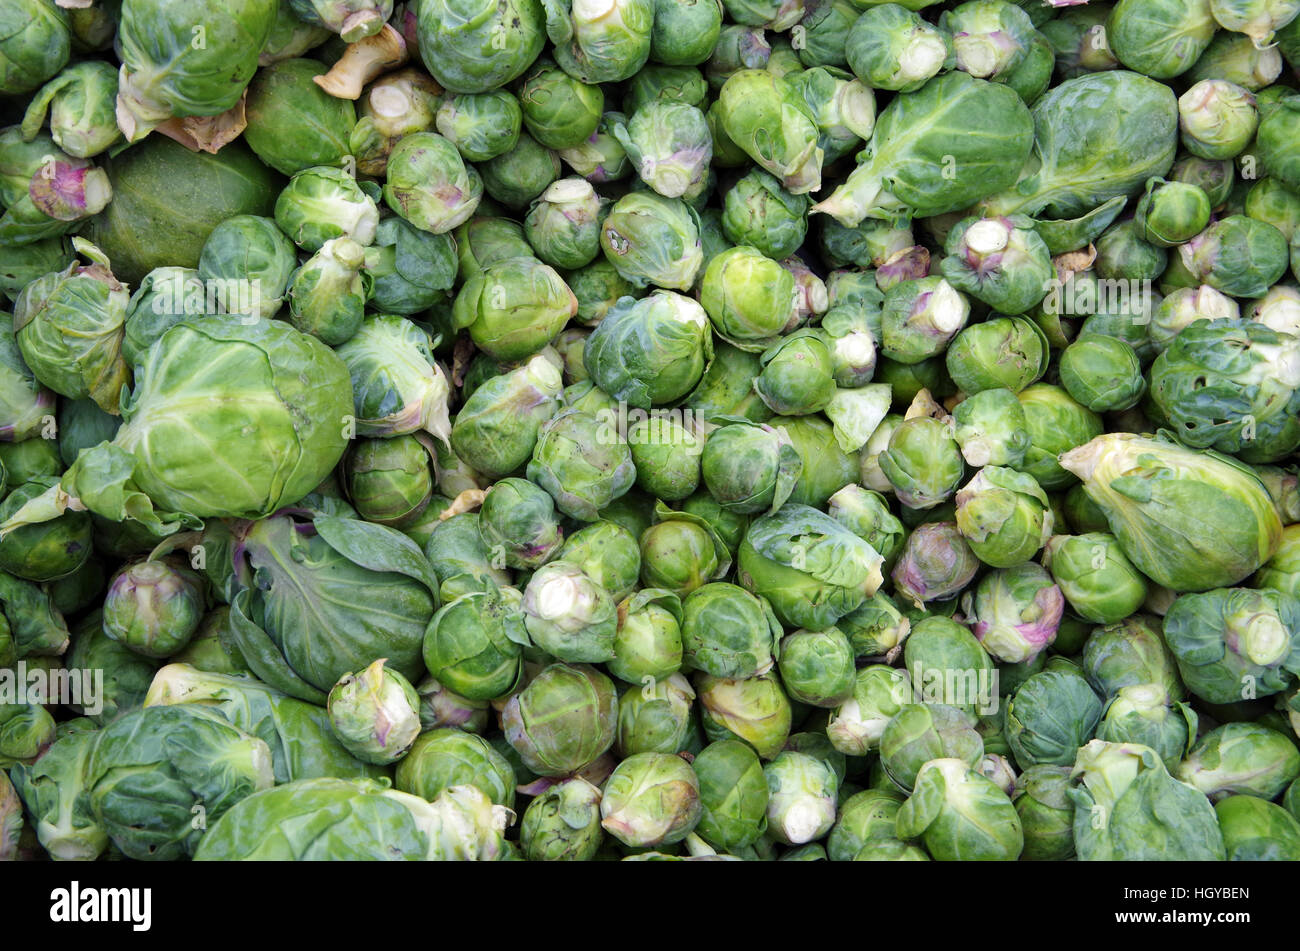 Farm fresh loose brussel sprouts viewed from above - Stock Image